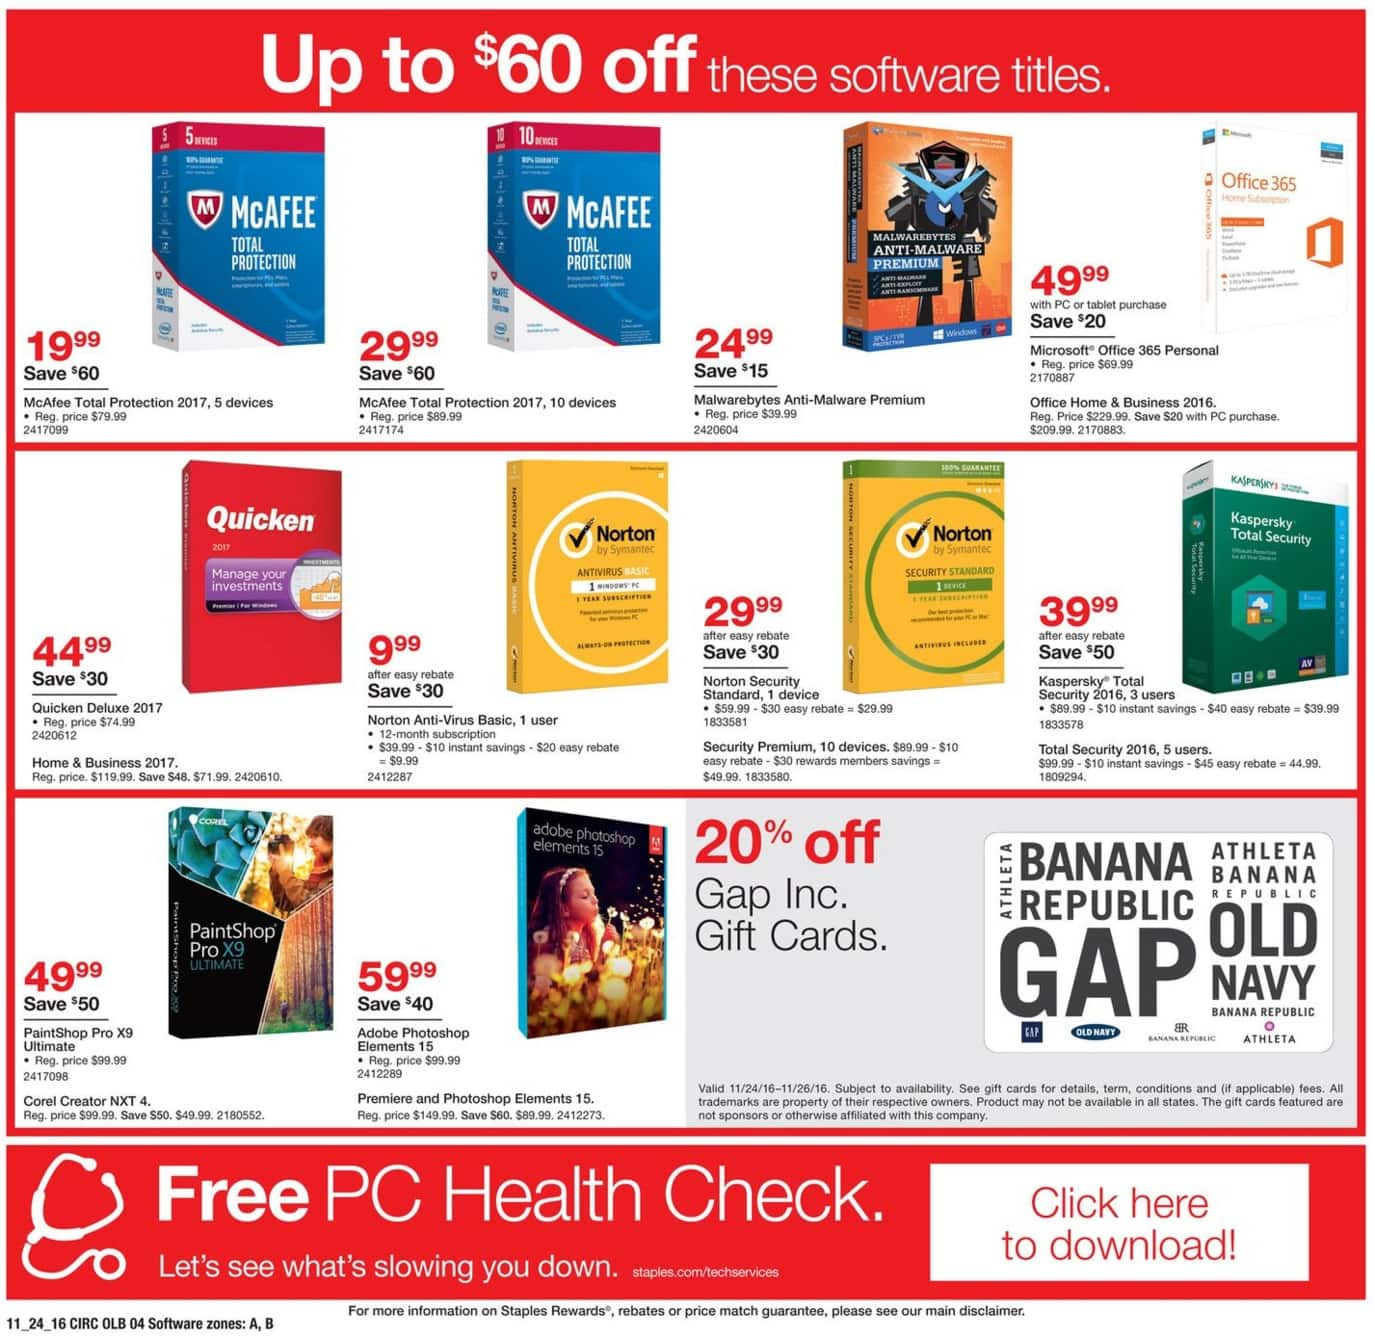 Staples deals slickdeals red robin coupon april 2018 hp pavilion laptop 499 intel core i7 12 gb ram 1 tb hard disk staples black friday more deals like this 2 hours old 59 views malvernweather Gallery